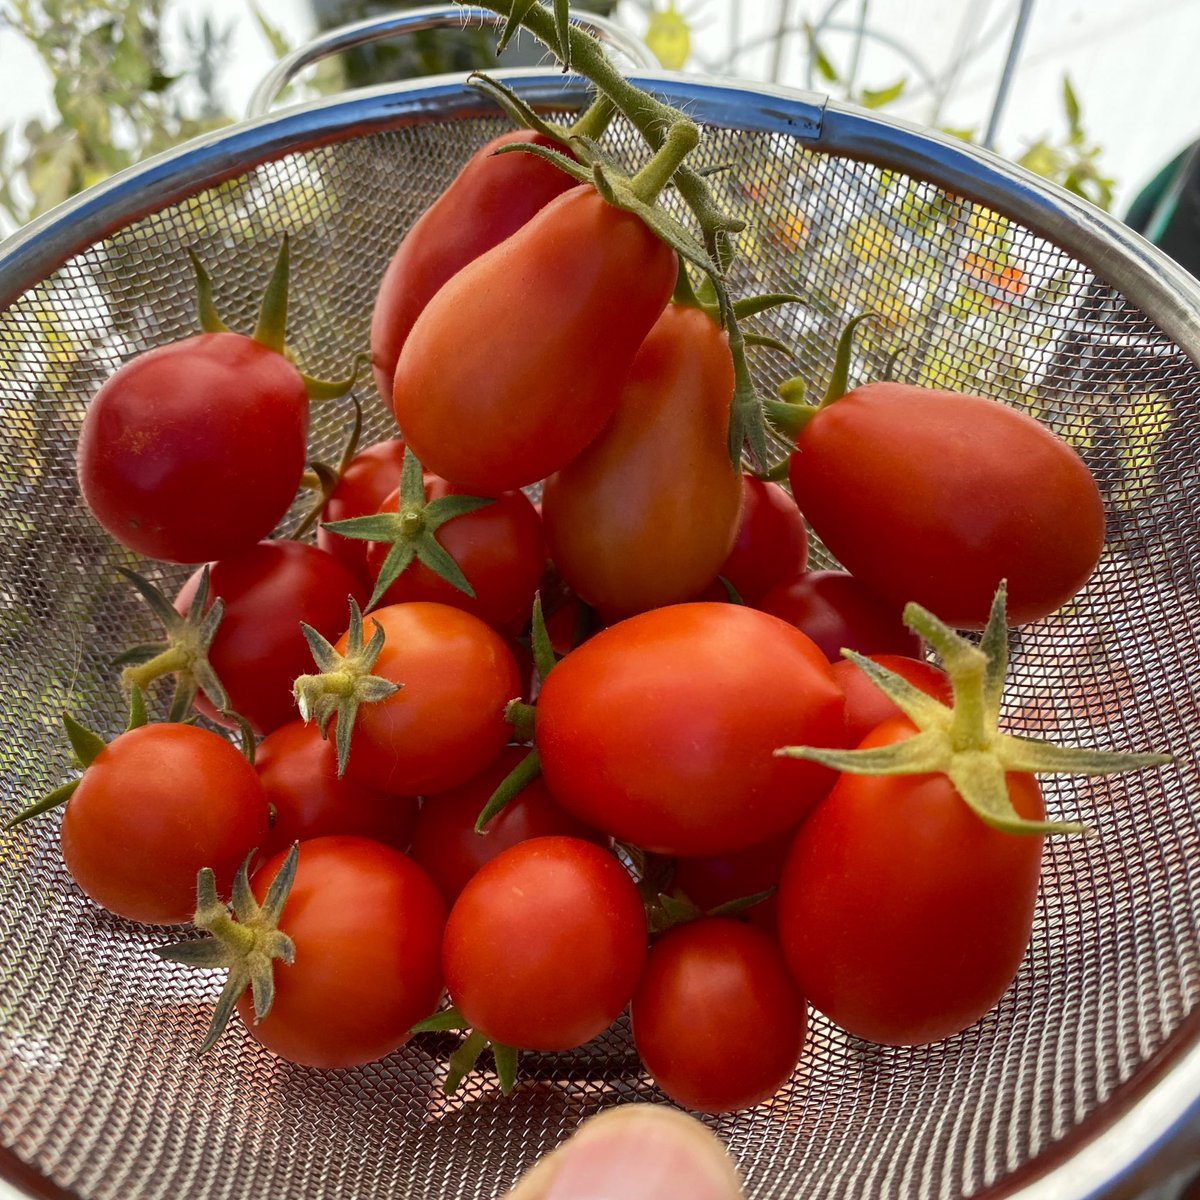 Decent Tomato bounty (Roma and Campari). Also managed to get some spring onions #harvestday #benvinsgarden